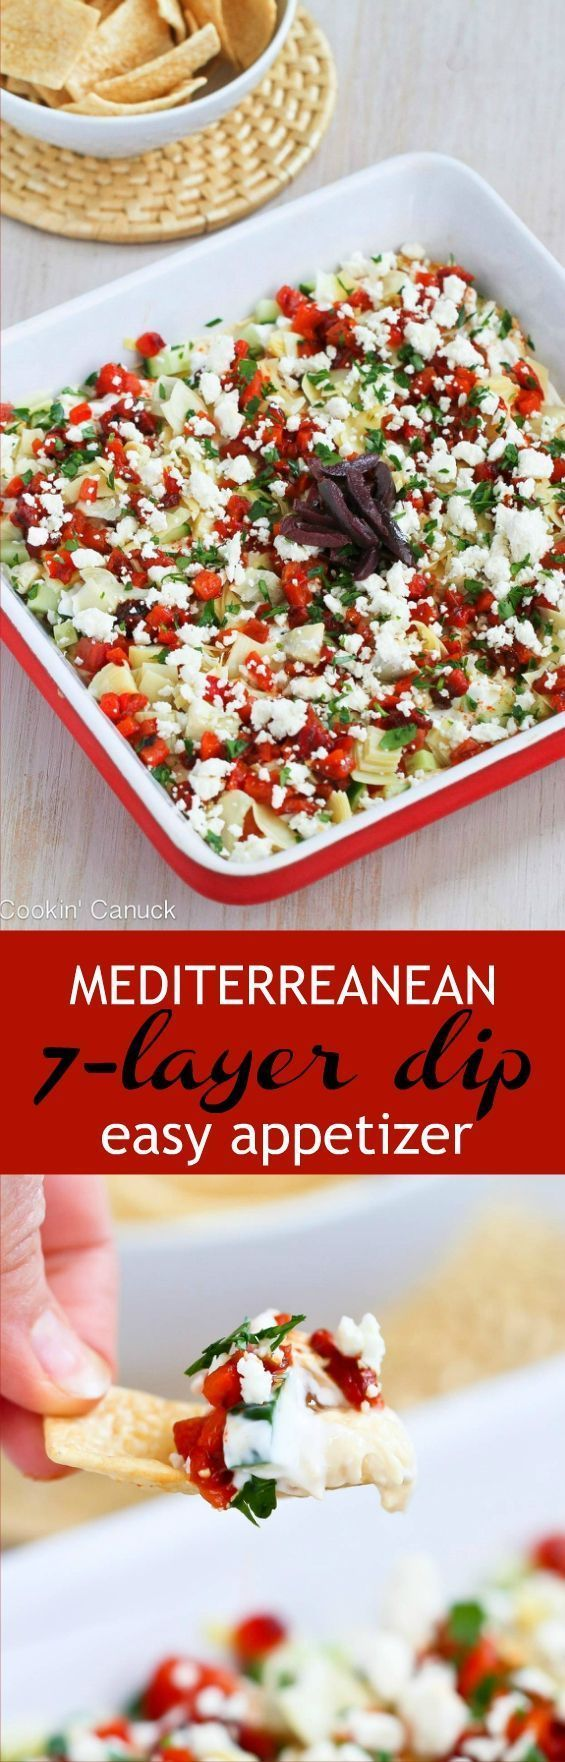 Mediterranean 7 Layer Dip Recipe #7layerdip This Mediterranean 7-Layer Dip Recipe is a fresh and healthy take on a classic appetizer. It will be a hit at your next party! 49 calories and 1 Weight Watchers Freestyle SP | Vegetarian | For A Crowd | Without Guacamole | Classic | Super Bowl | Tailgating | Low Calories #7layerdip #mediterranean #weightwatchers #7layerdip Mediterranean 7 Layer Dip Recipe #7layerdip This Mediterranean 7-Layer Dip Recipe is a fresh and healthy take on a classic appetize #7layerdip